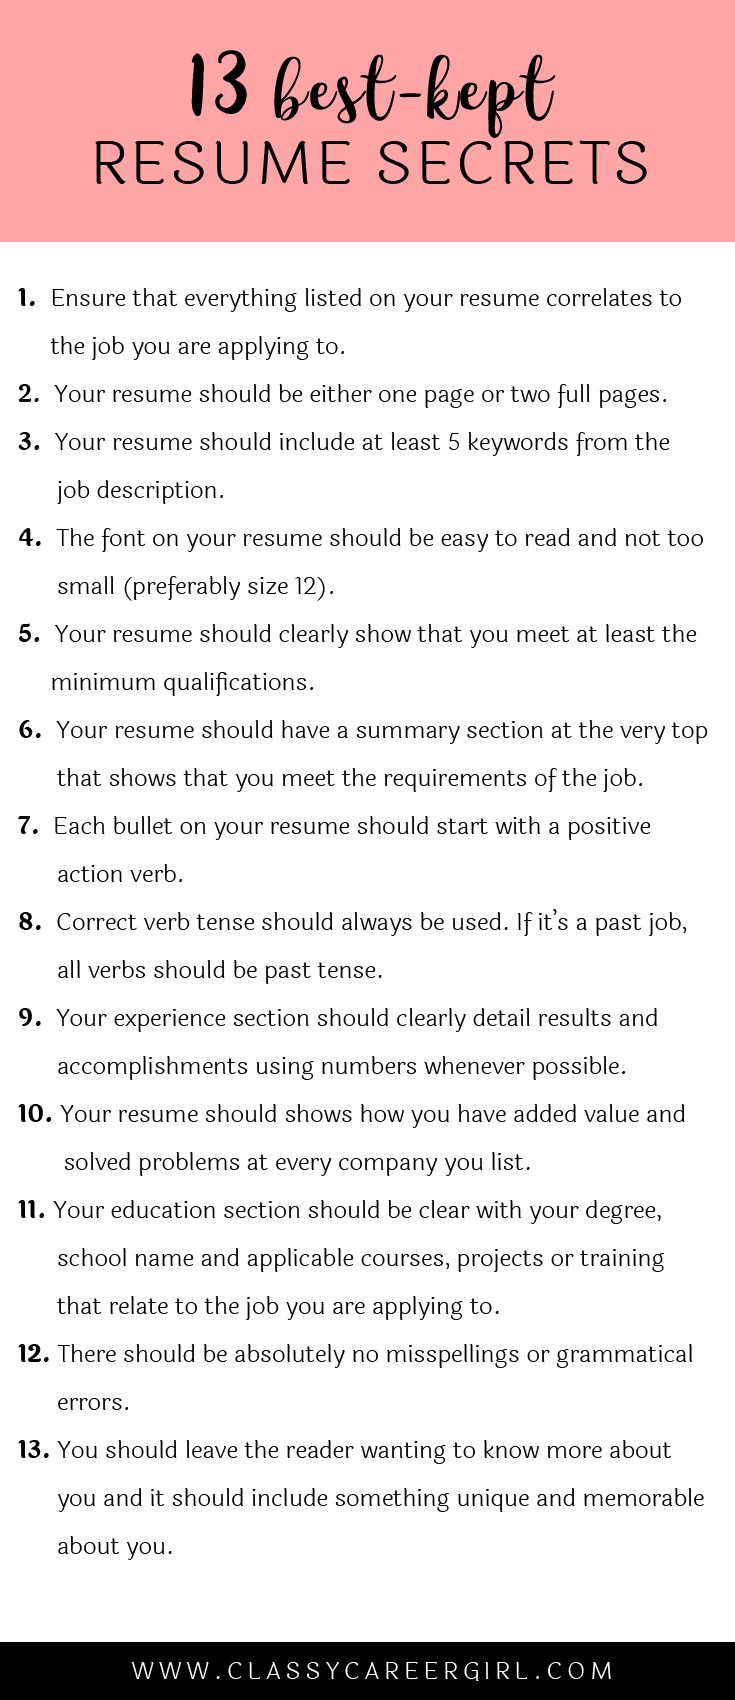 Opposenewapstandardsus  Pretty  Ideas About Resume On Pinterest  Cv Format Resume Cv And  With Remarkable Some Hiring Managers Will Toss Your Resume Out If You Dont Know These  With Attractive Cashier Job Resume Also Physical Therapy Resumes In Addition Waitress Resumes And Resume Wizard Microsoft Word As Well As Resume Sample Objective Additionally Preschool Teacher Assistant Resume From Pinterestcom With Opposenewapstandardsus  Remarkable  Ideas About Resume On Pinterest  Cv Format Resume Cv And  With Attractive Some Hiring Managers Will Toss Your Resume Out If You Dont Know These  And Pretty Cashier Job Resume Also Physical Therapy Resumes In Addition Waitress Resumes From Pinterestcom